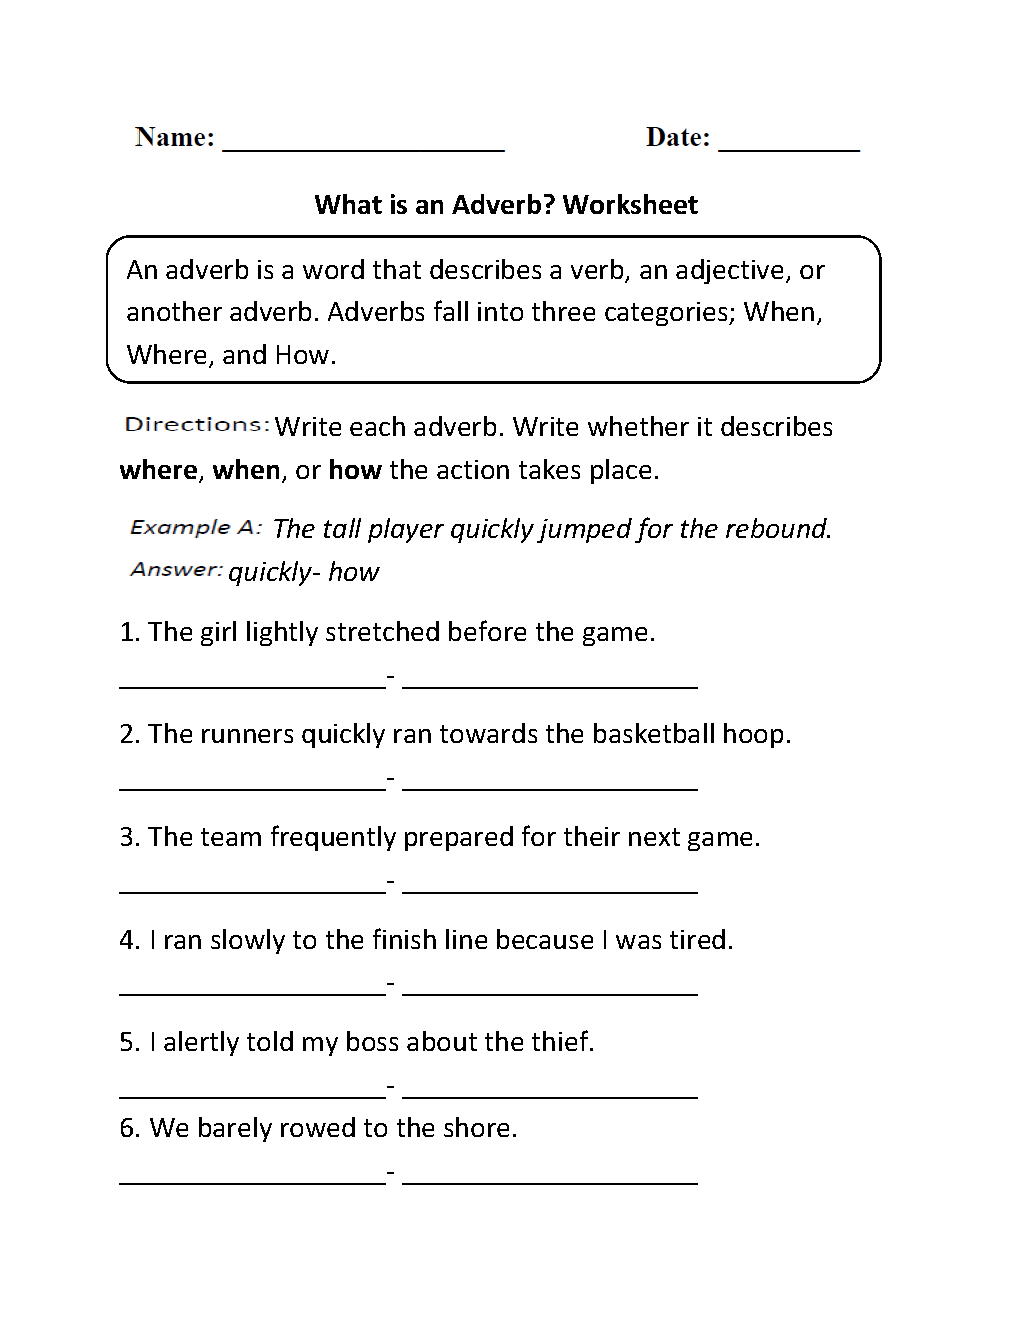 Parts Speech Worksheets  Adverb Worksheets alphabet worksheets, learning, worksheets for teachers, education, and grade worksheets Worksheets Adverbs 1342 x 1012